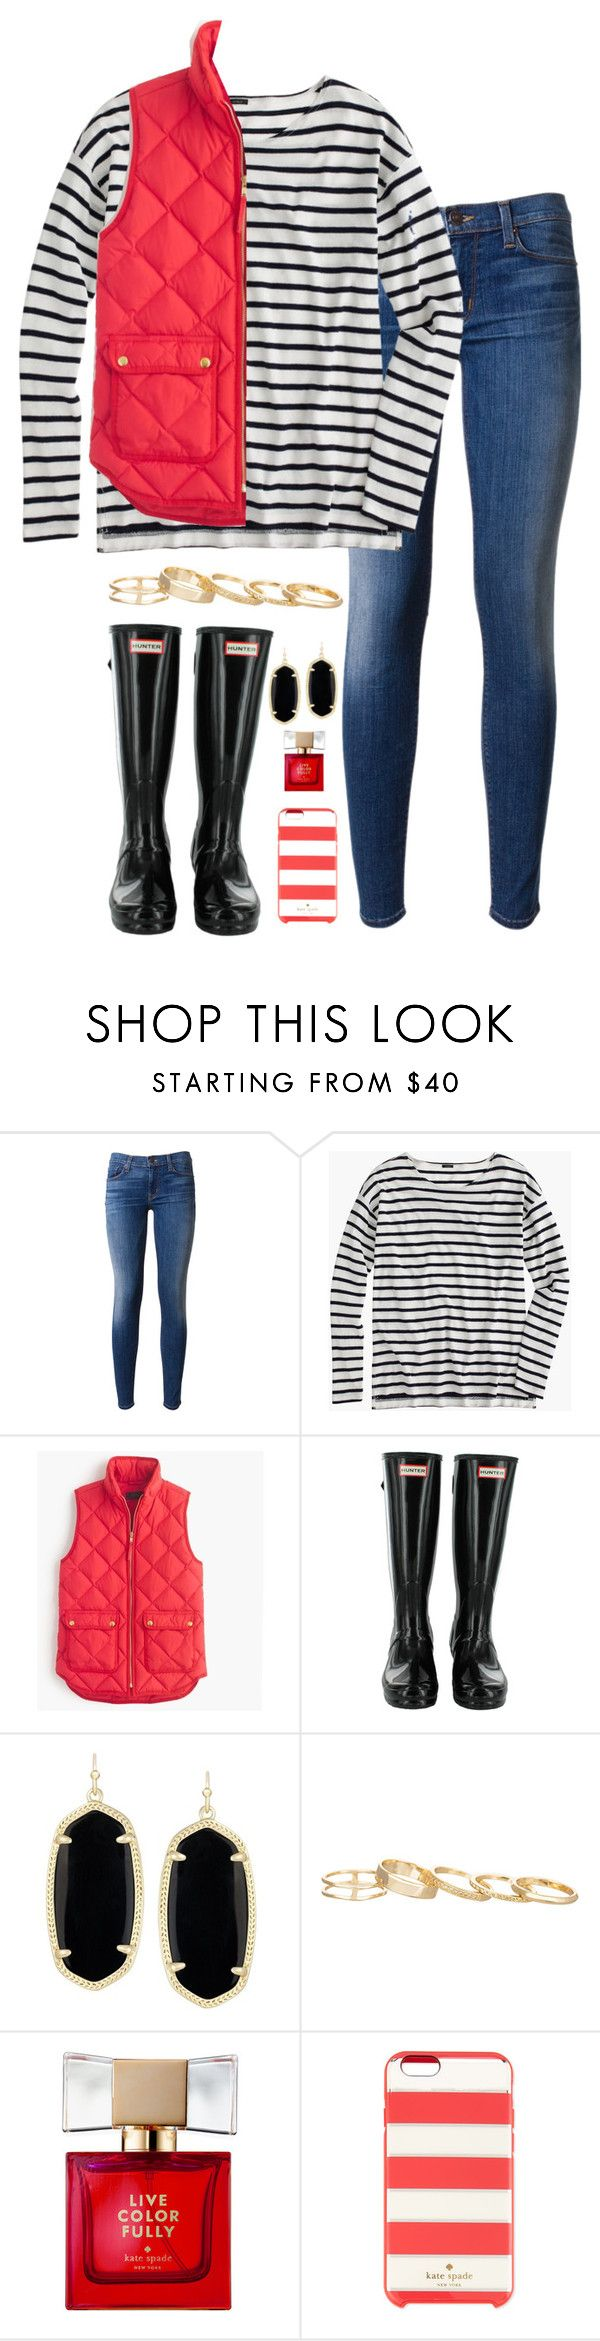 """lit"" by tabooty ❤ liked on Polyvore featuring Hudson, J.Crew, Kendra Scott and Kate Spade"